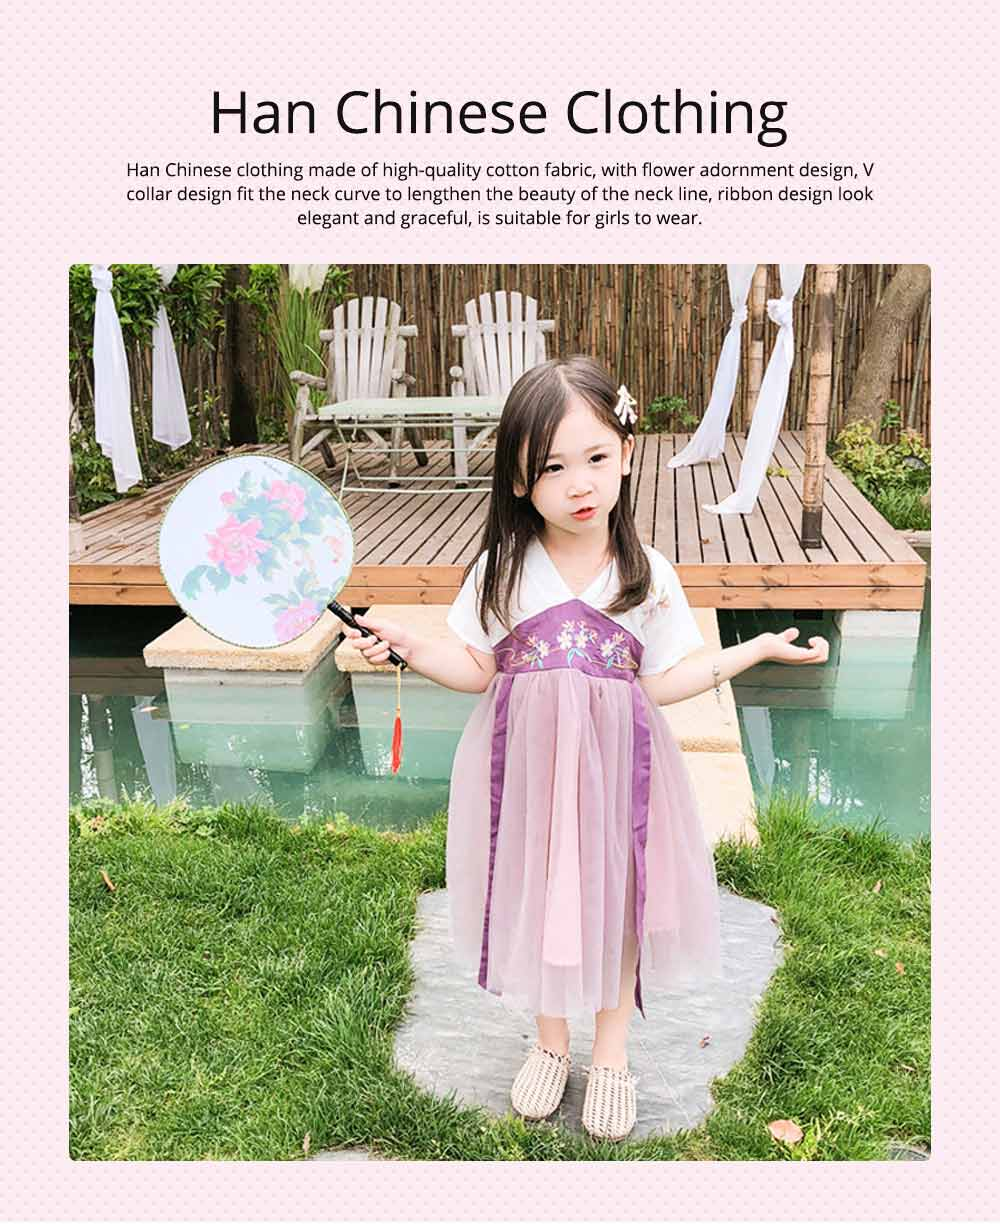 Han Chinese Clothing for Girls V Collar Flower Adornment Ribbon Chinese Characteristics Skin-friendly and Comfortable Dress 0